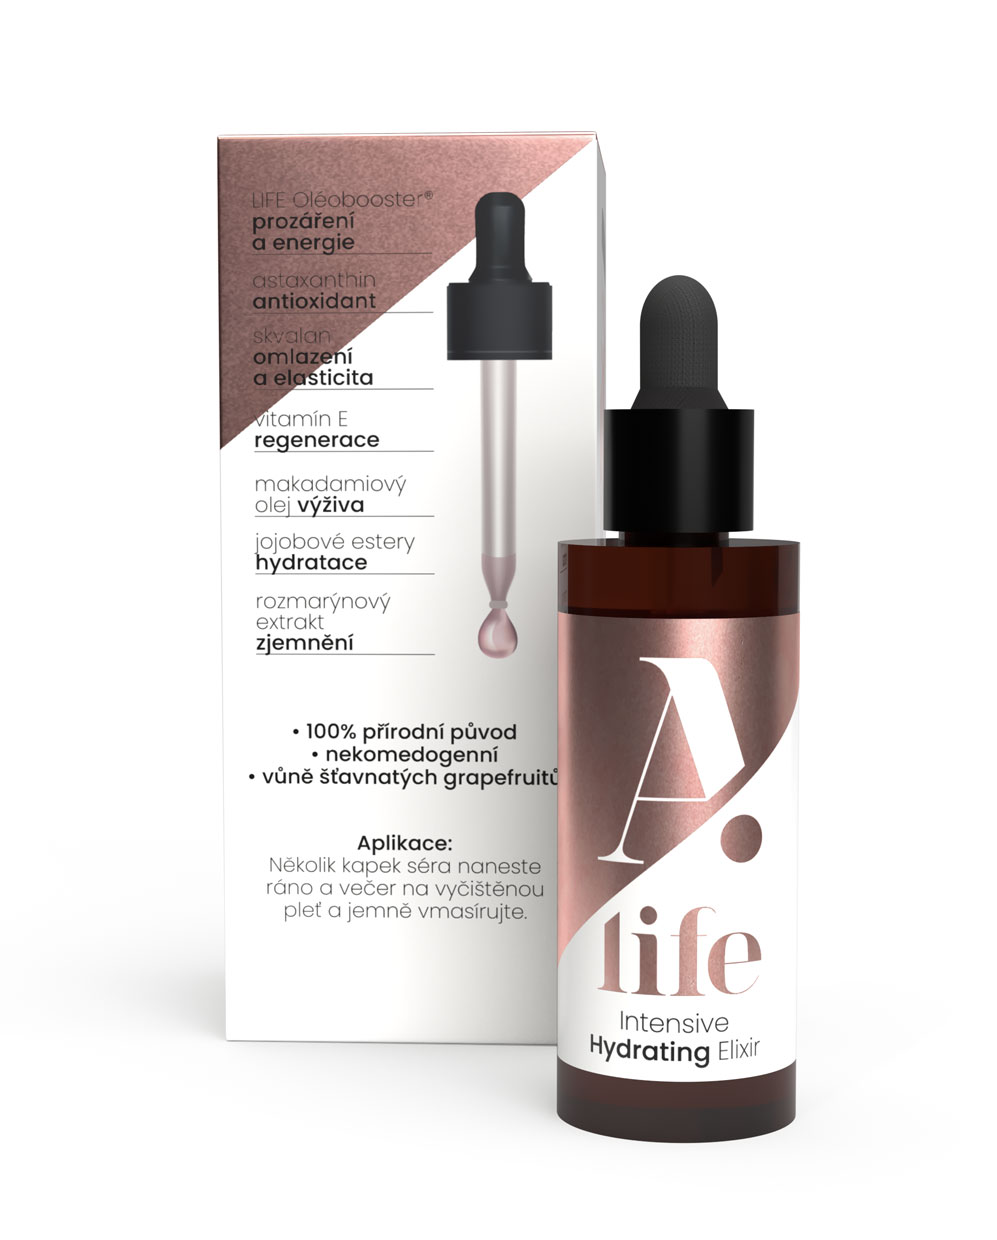 Alife Intensive Hydrating Elixir